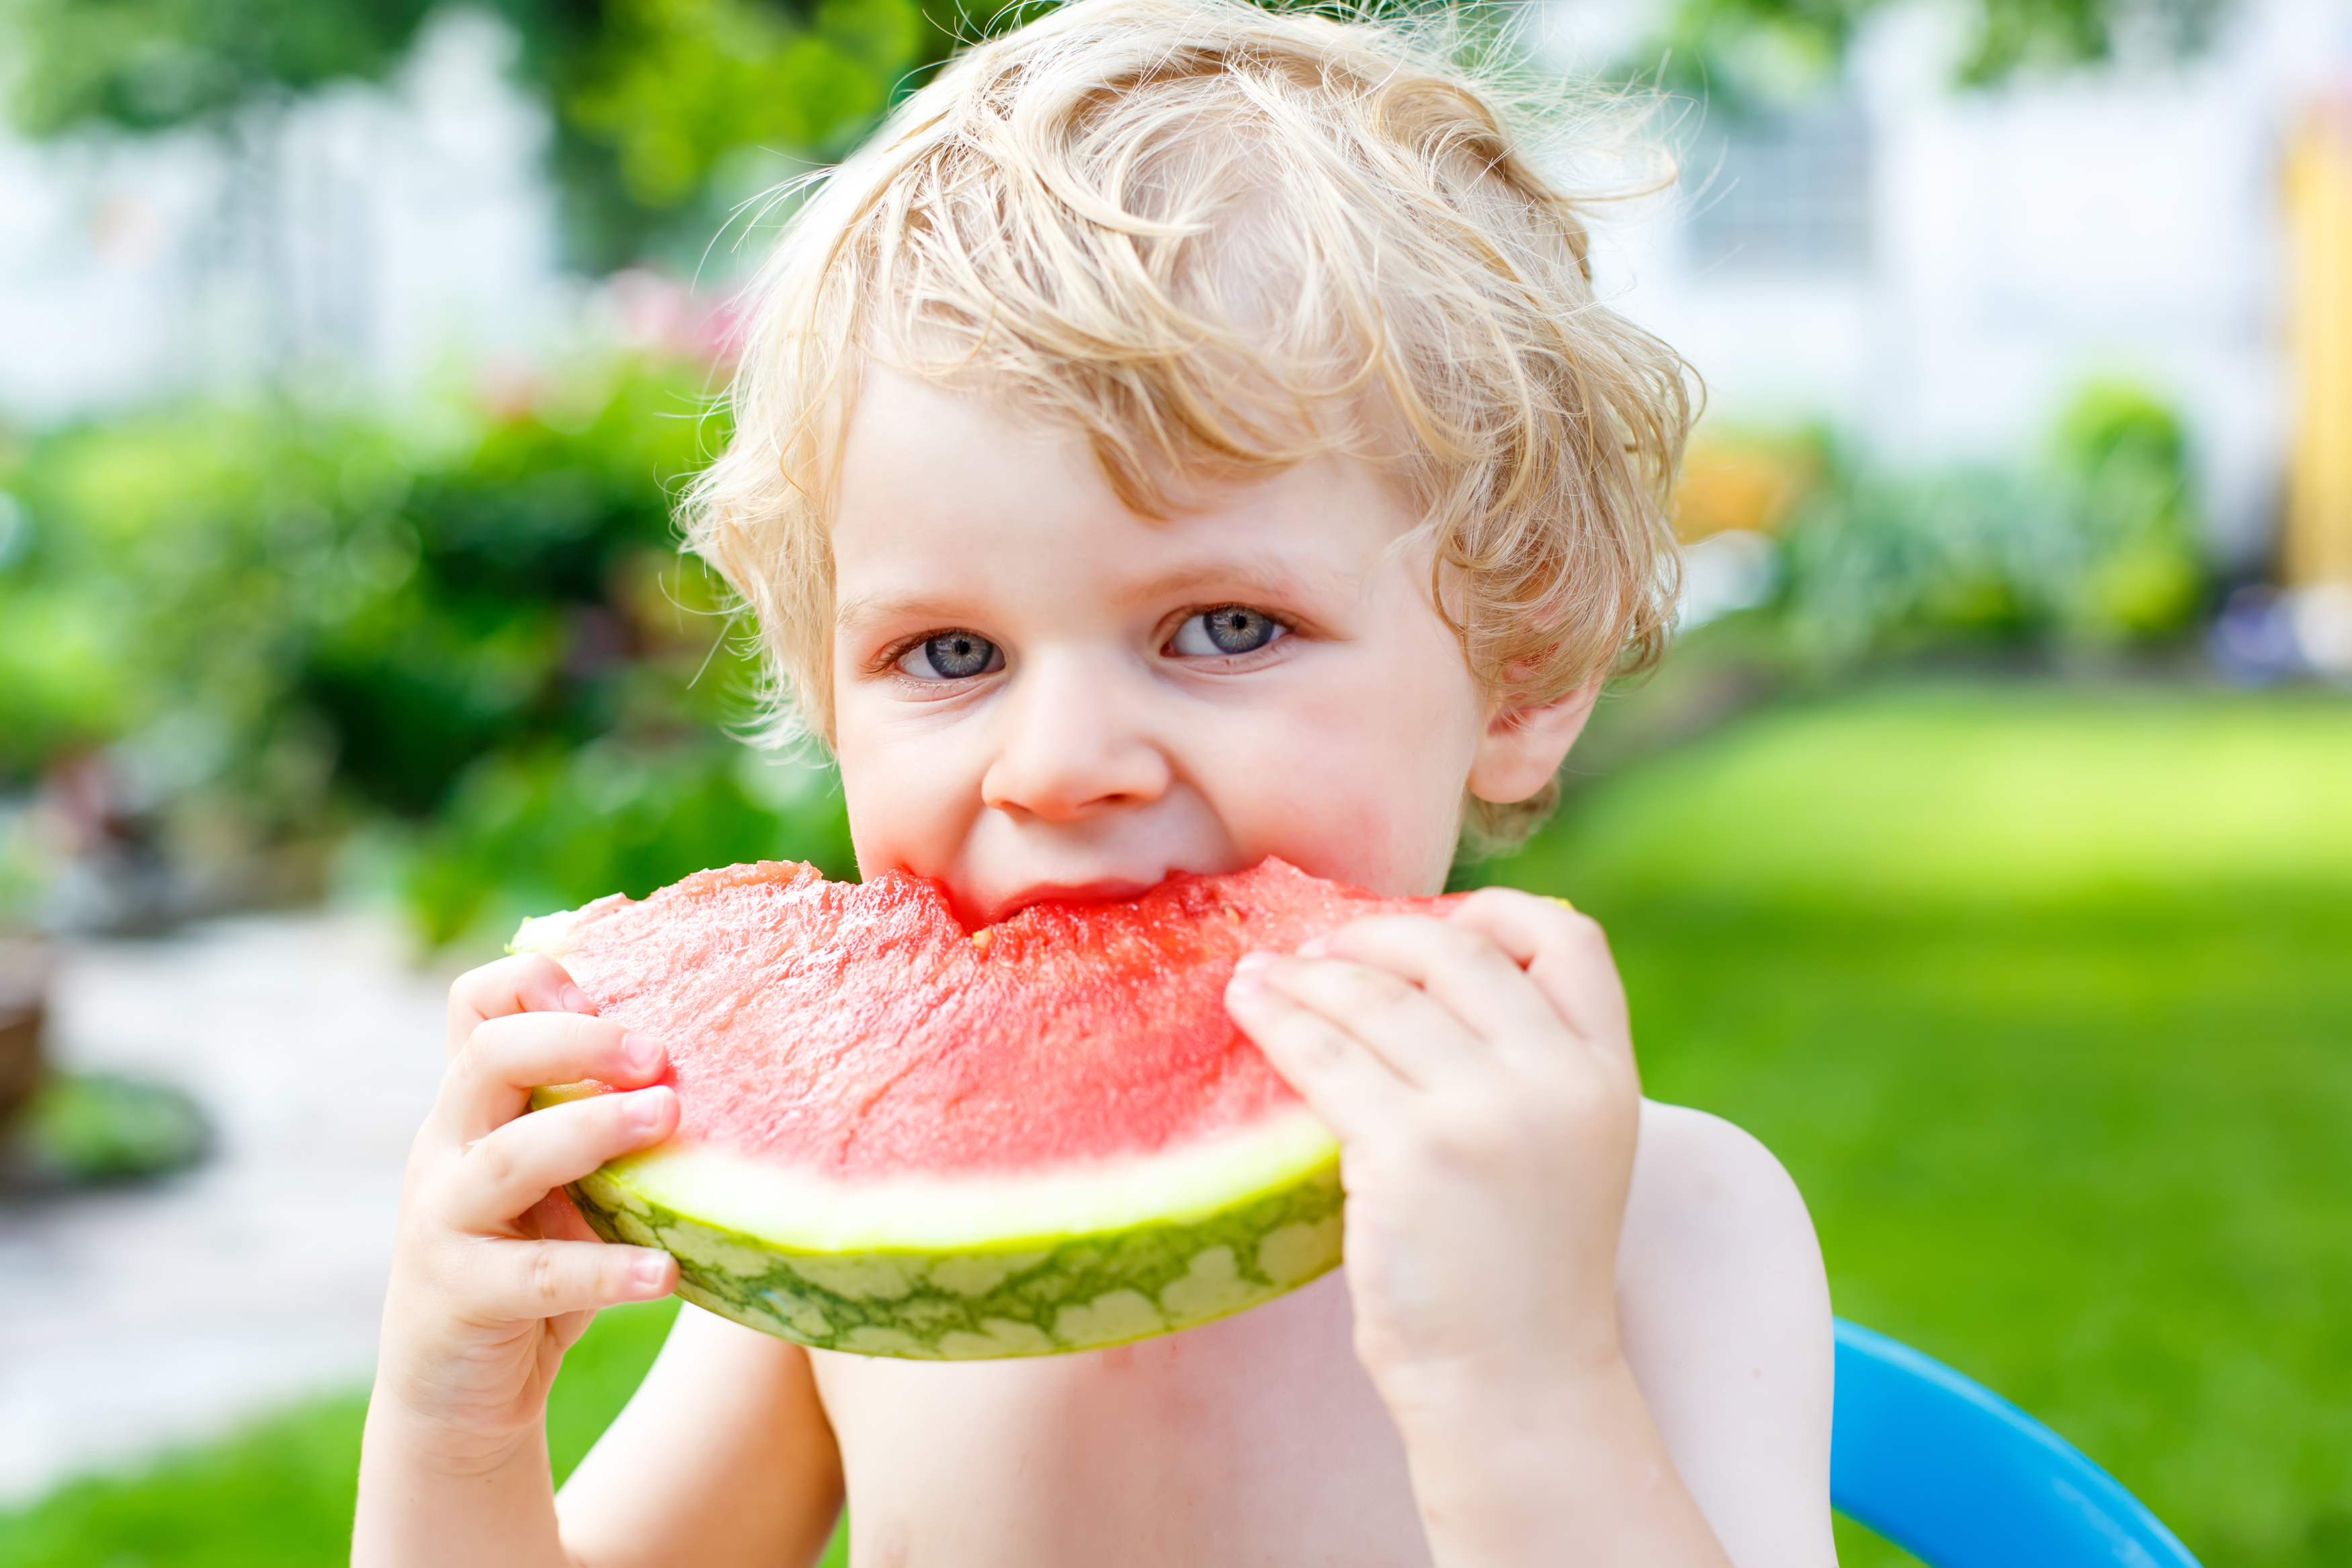 A boy eating a slice of watermelon